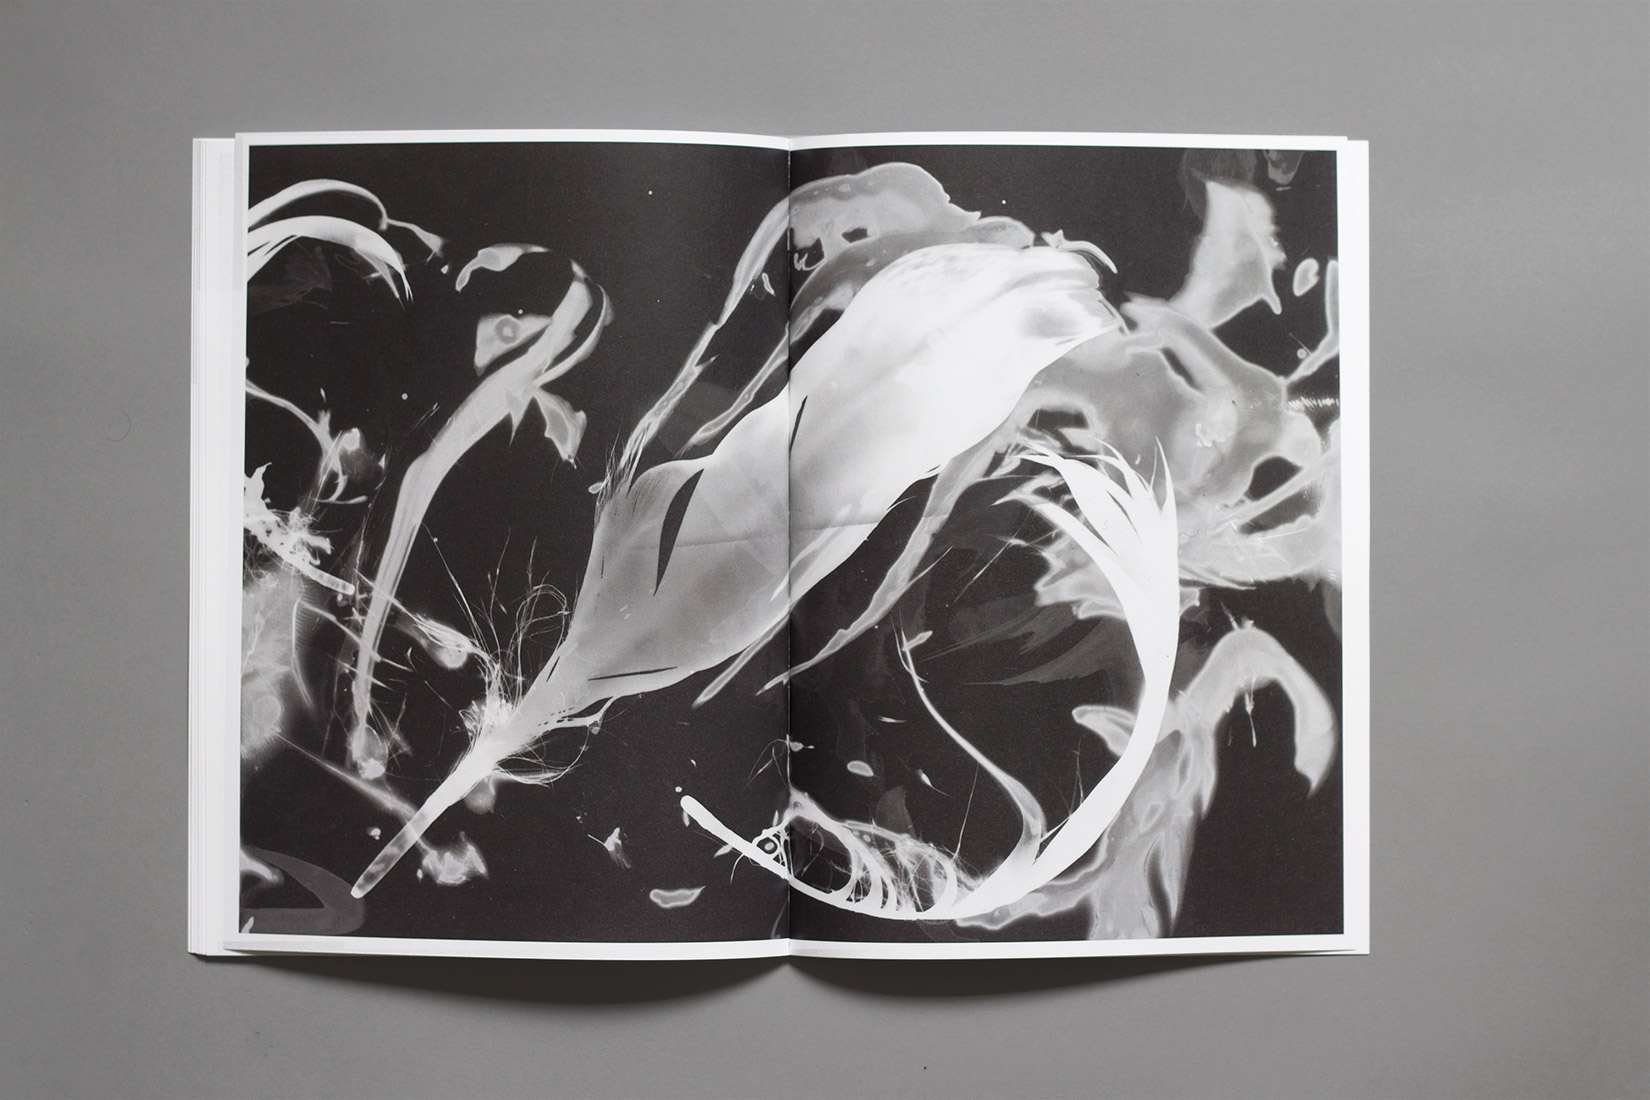 diploma, graphic design, book, Vaumarcus, photogram, feathers, liquid, black and white, memories